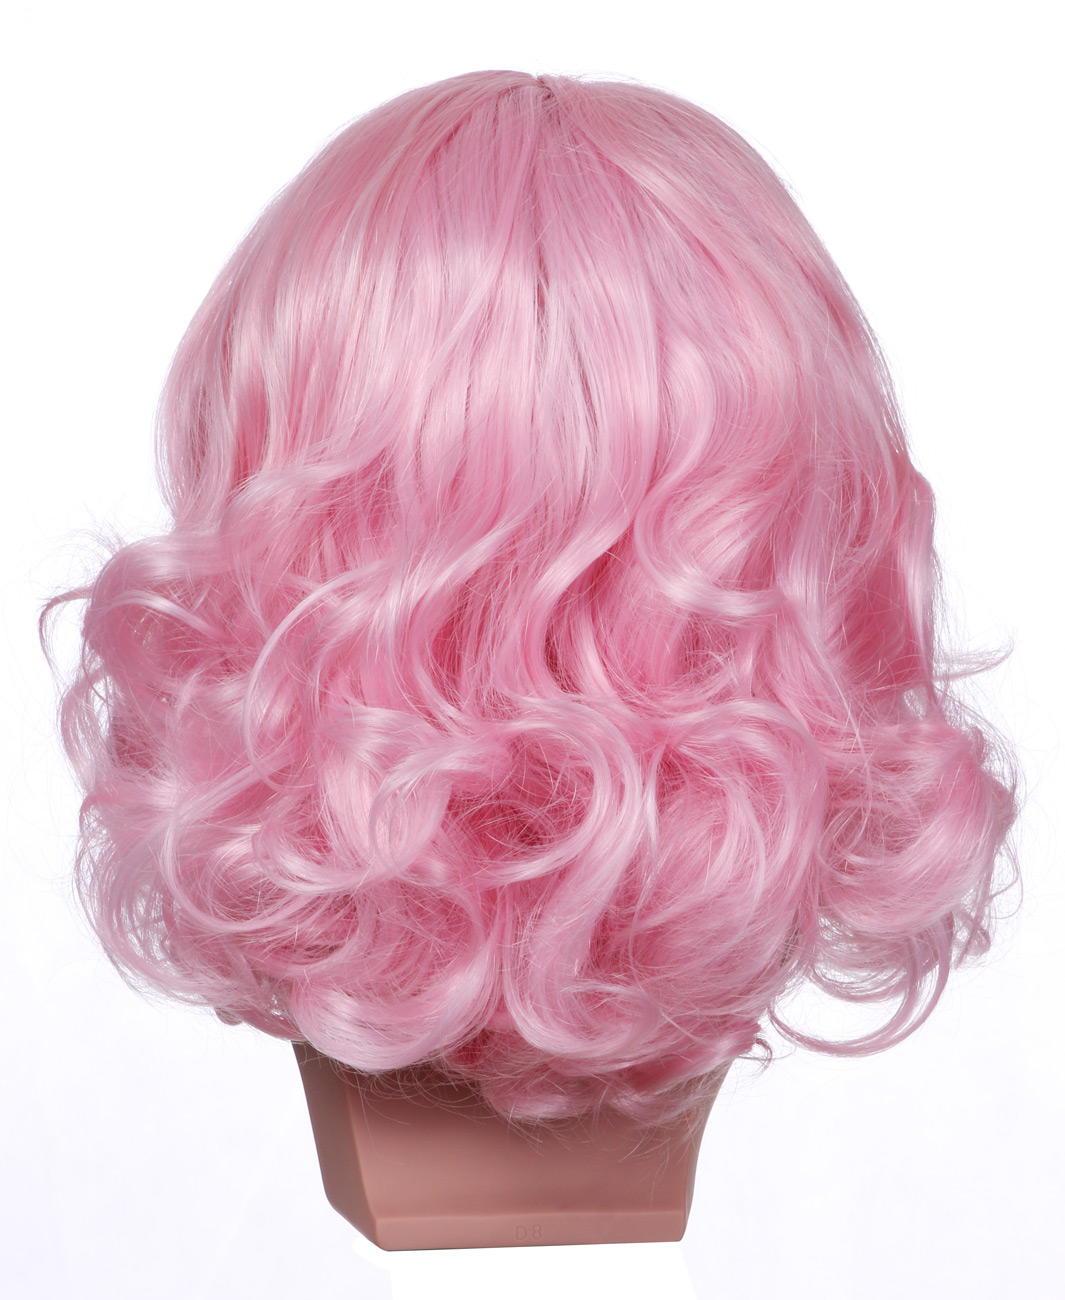 Perruque-front-lace-rose-mi-longue-bouclee-35cm-cosplay-girly